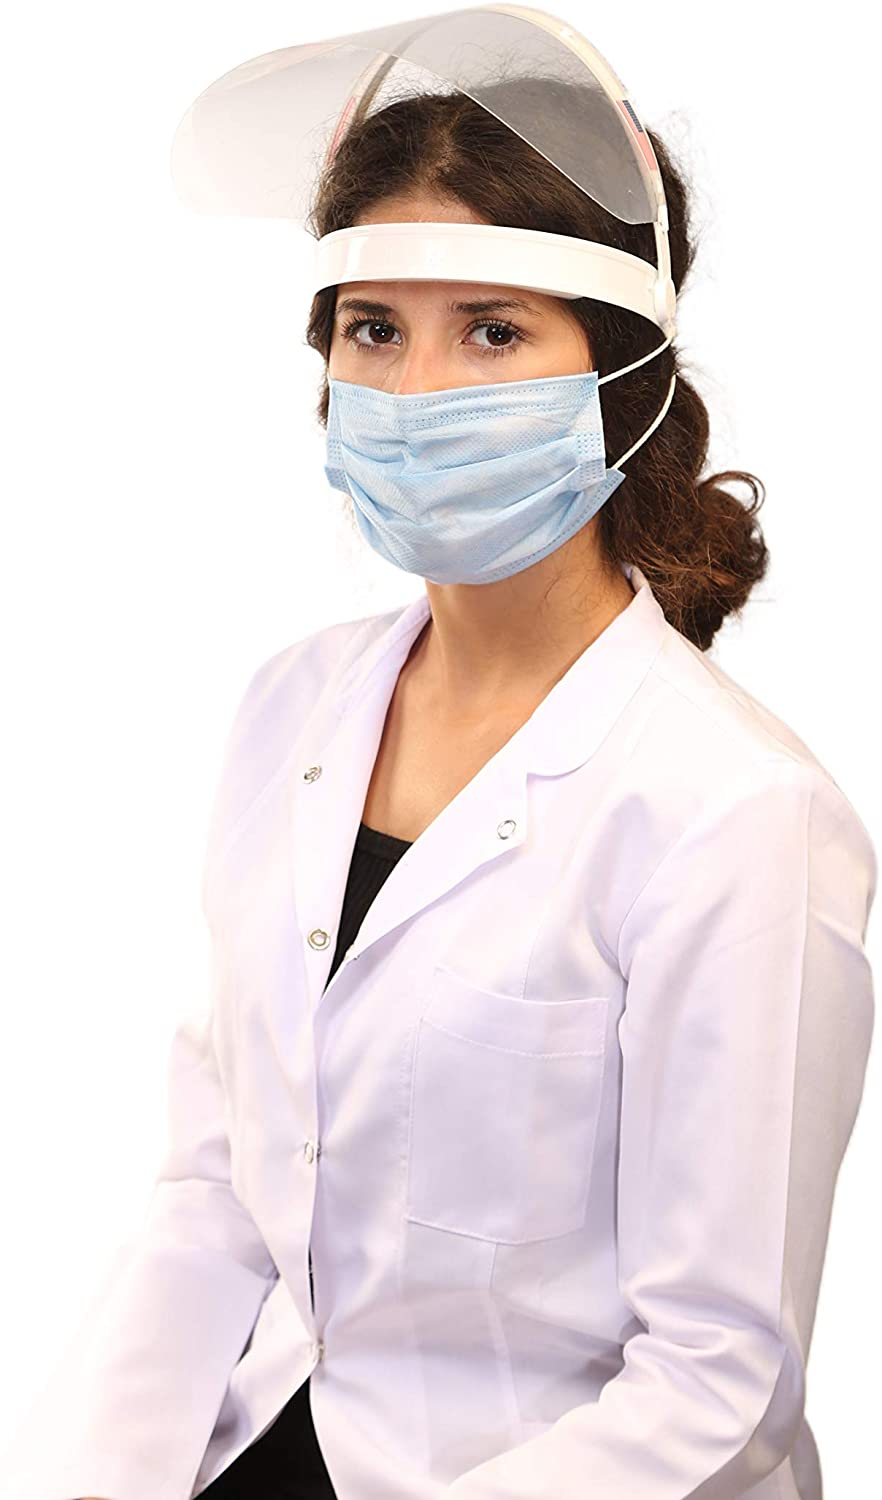 Face Shield-Plastic Face Shield-Reusable Face Shields-Full Face Protection with Anti-Fog-Full Face Shield With Sponge